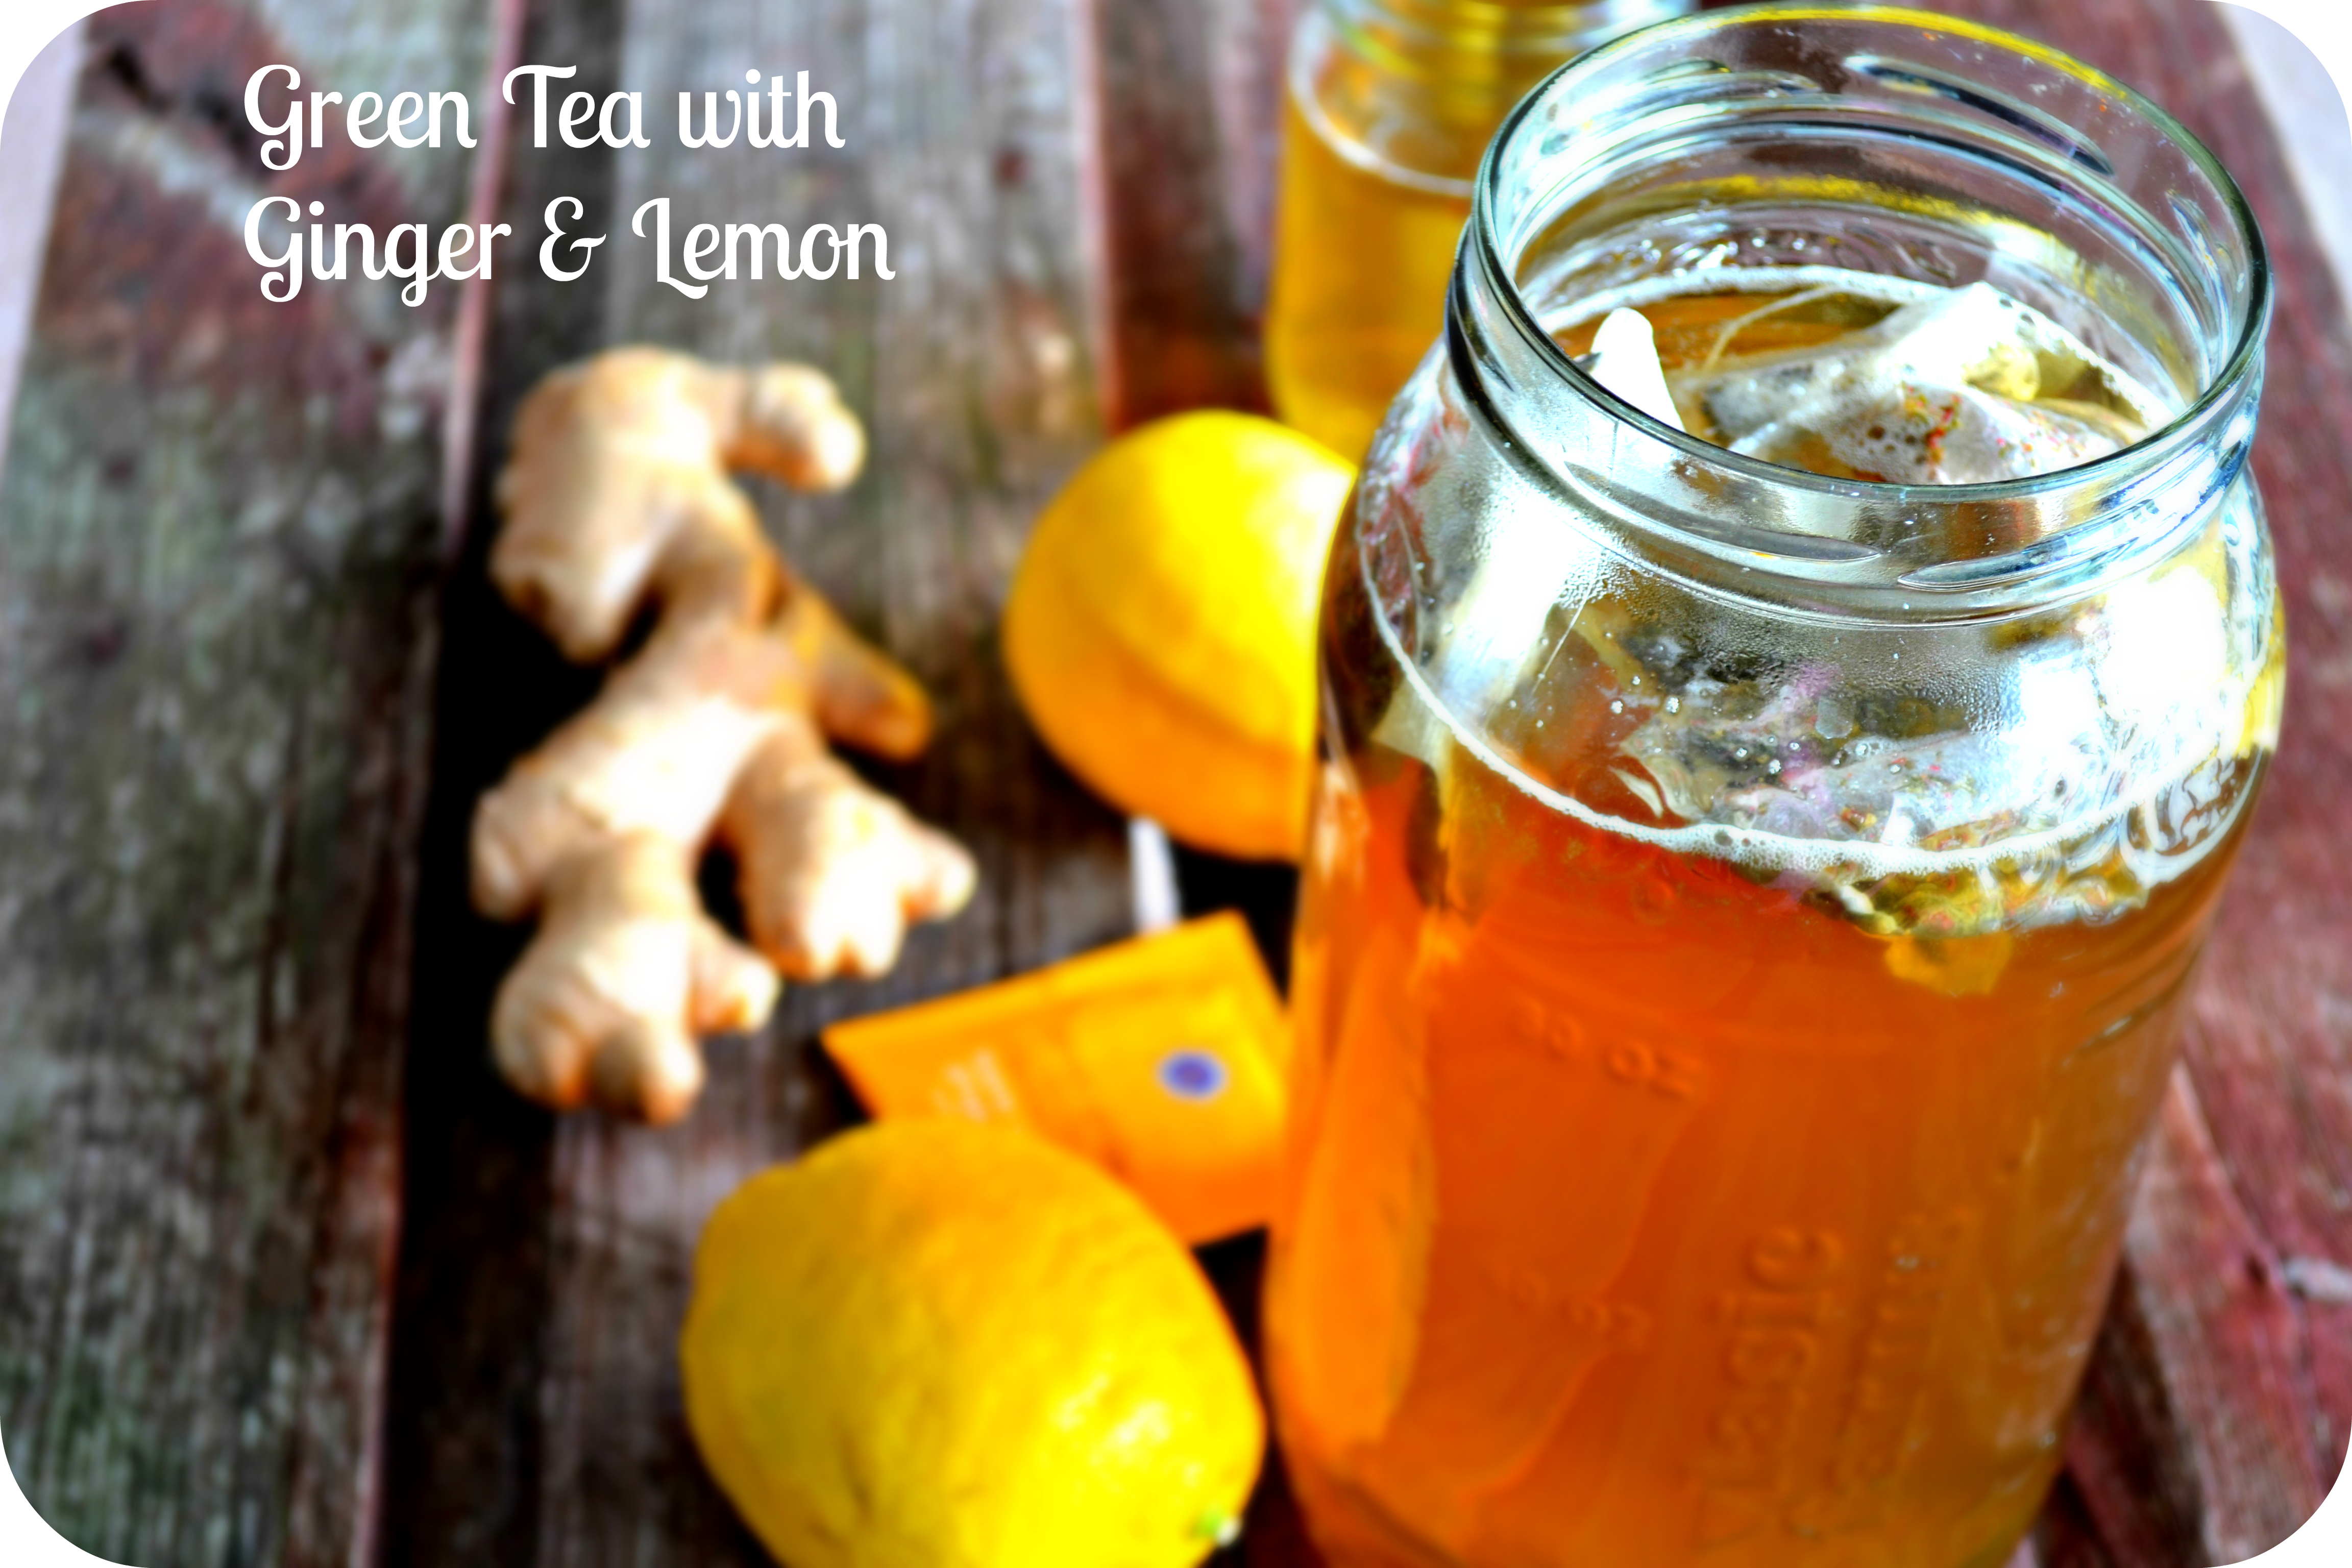 Ginger and lemon for weight loss - recipes, cooking features and recommendations 24